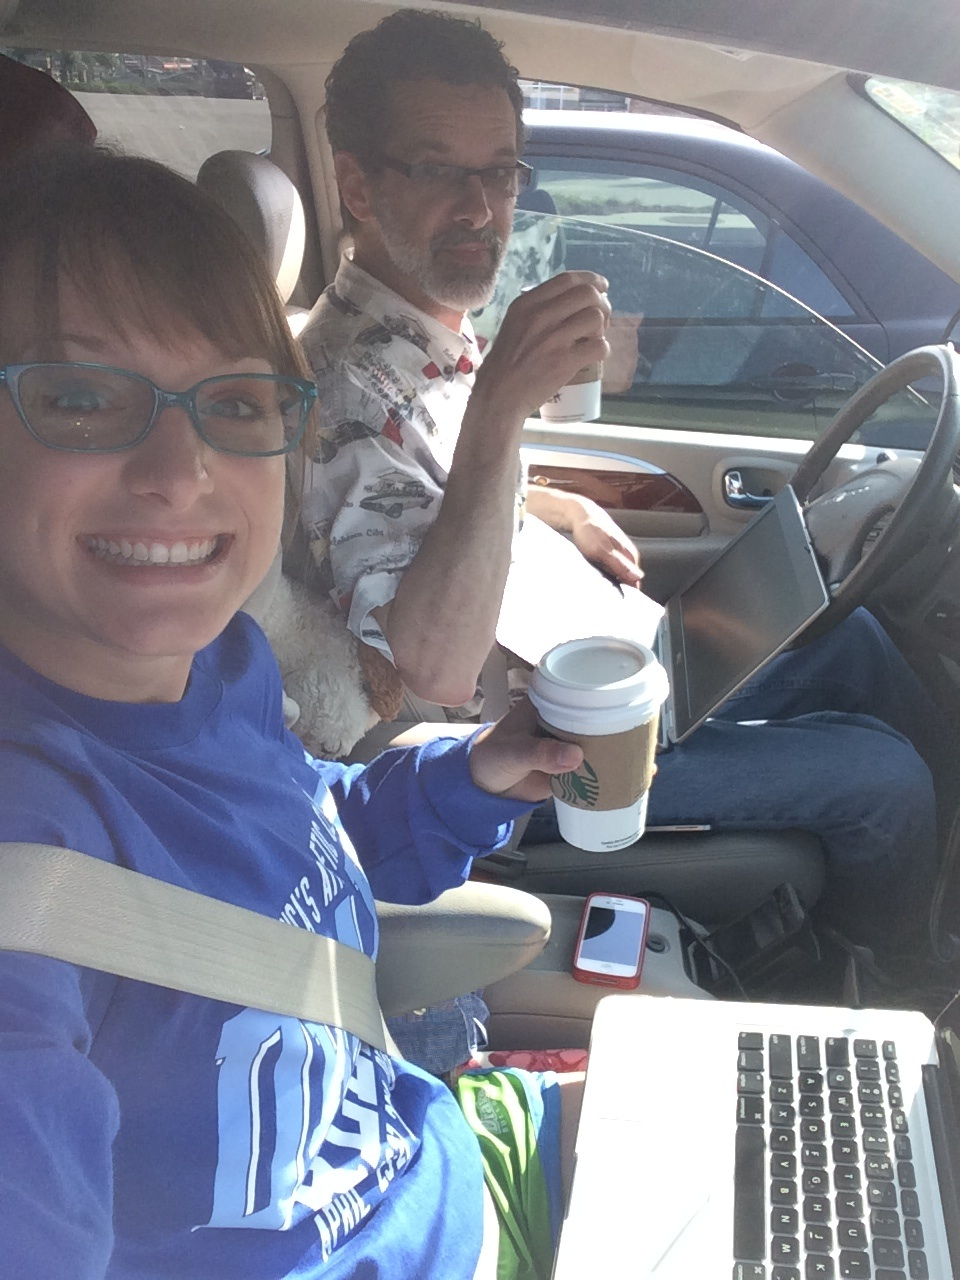 Driving and working during coffee break